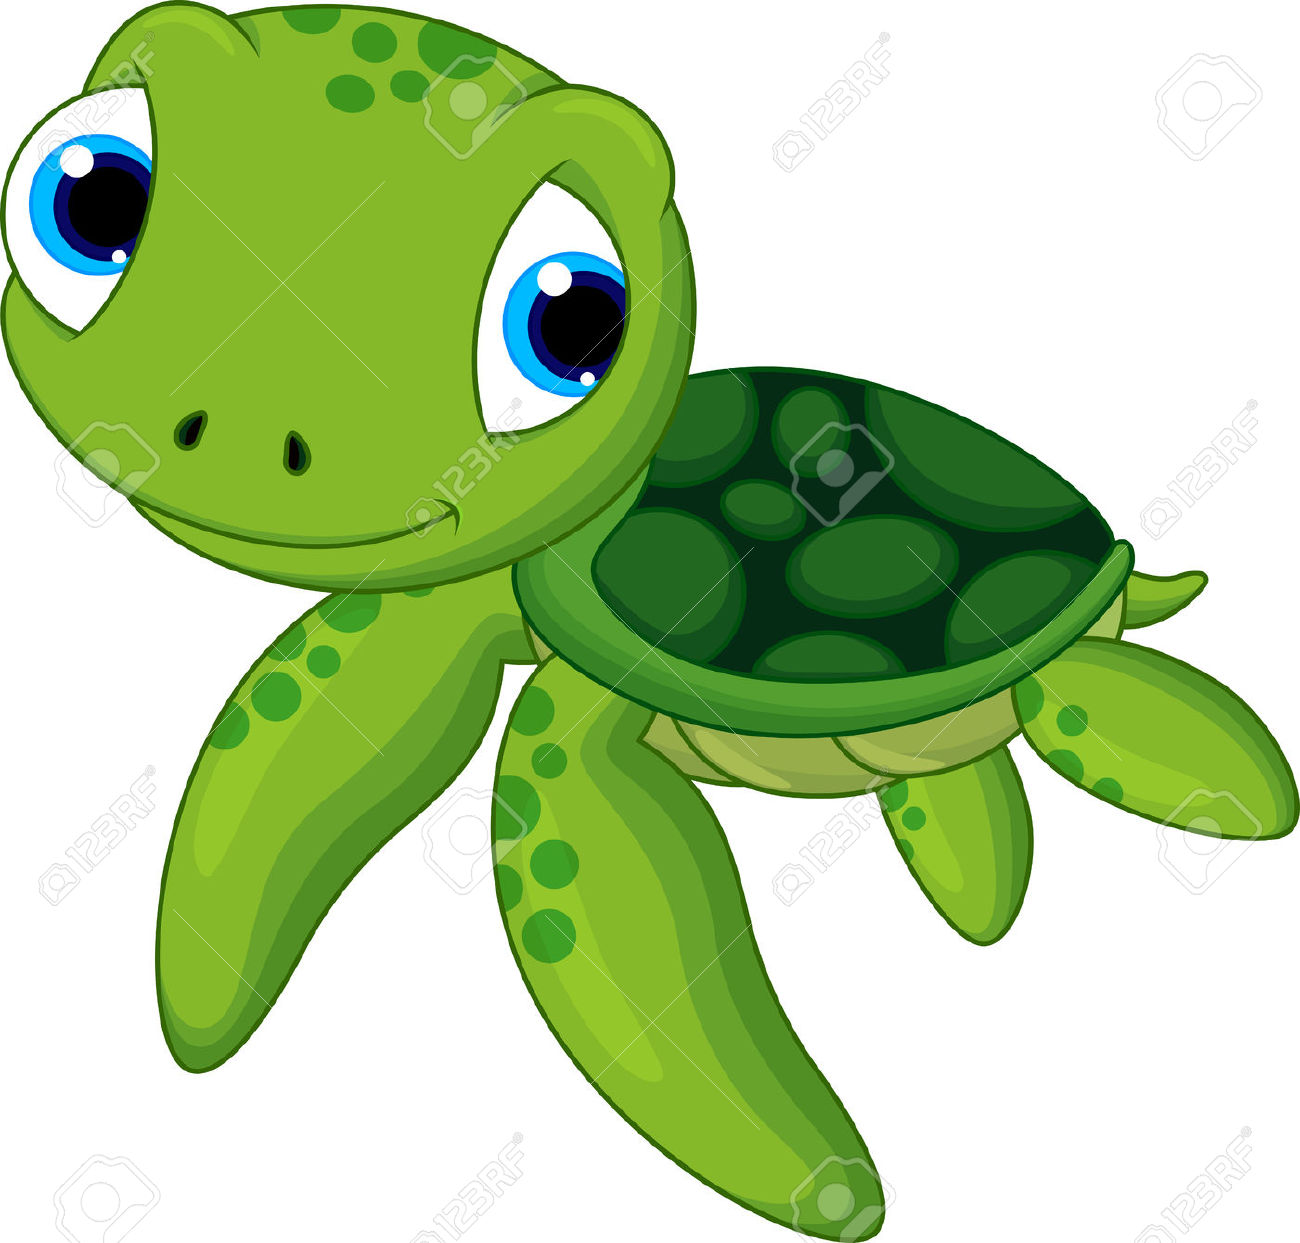 Sea Turtle Clipart & Sea Turtle Clip Art Images.